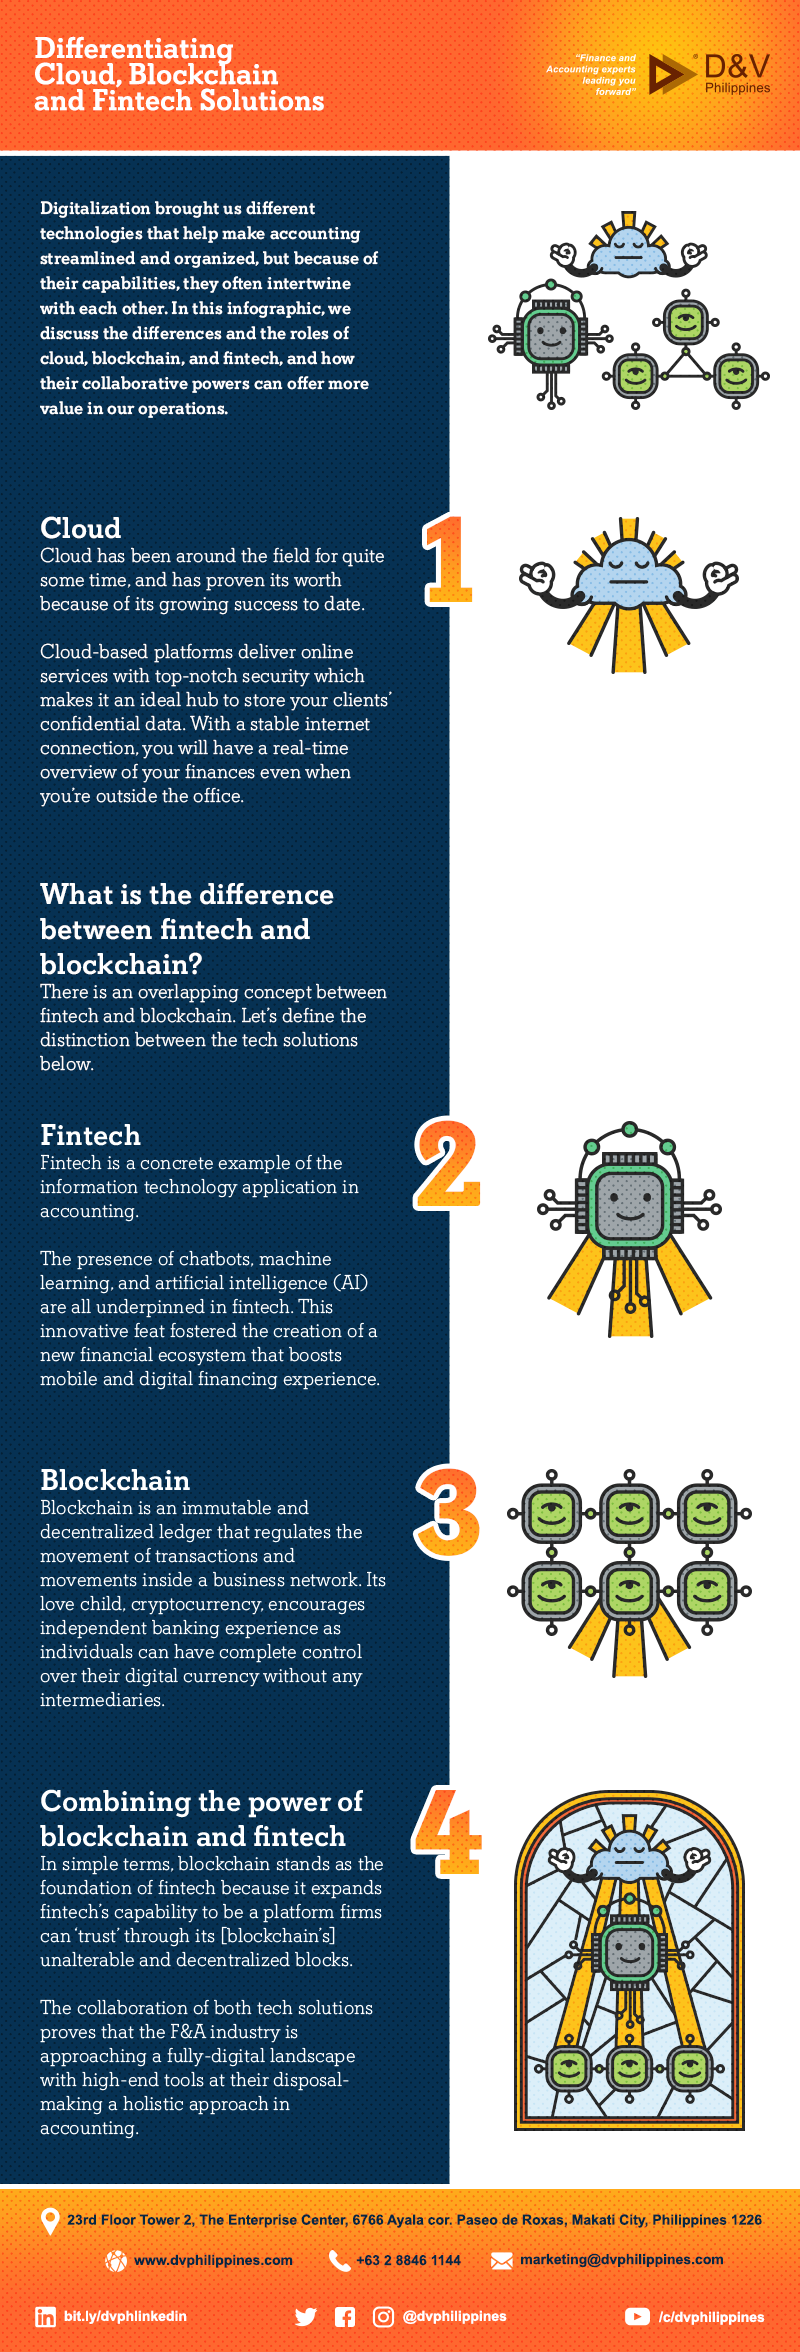 Infograpihcs_Differentiating-Cloud,-Blockchain-and-Fintech-Solutions_Main-1